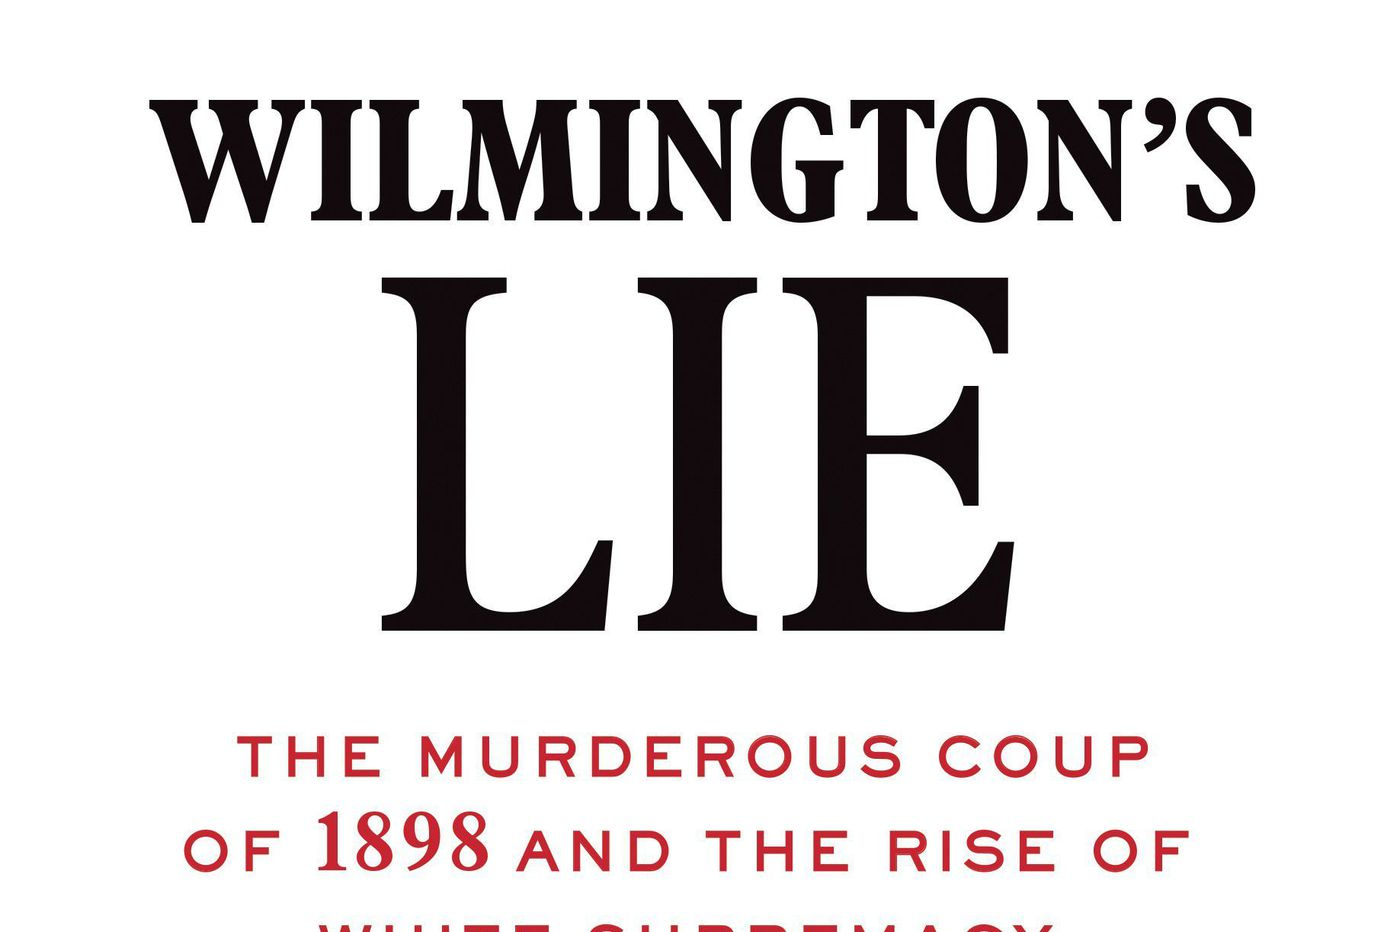 'Wilmington's Lie': This little-known 1898 coup in North Carolina had an ugly legacy | Book review